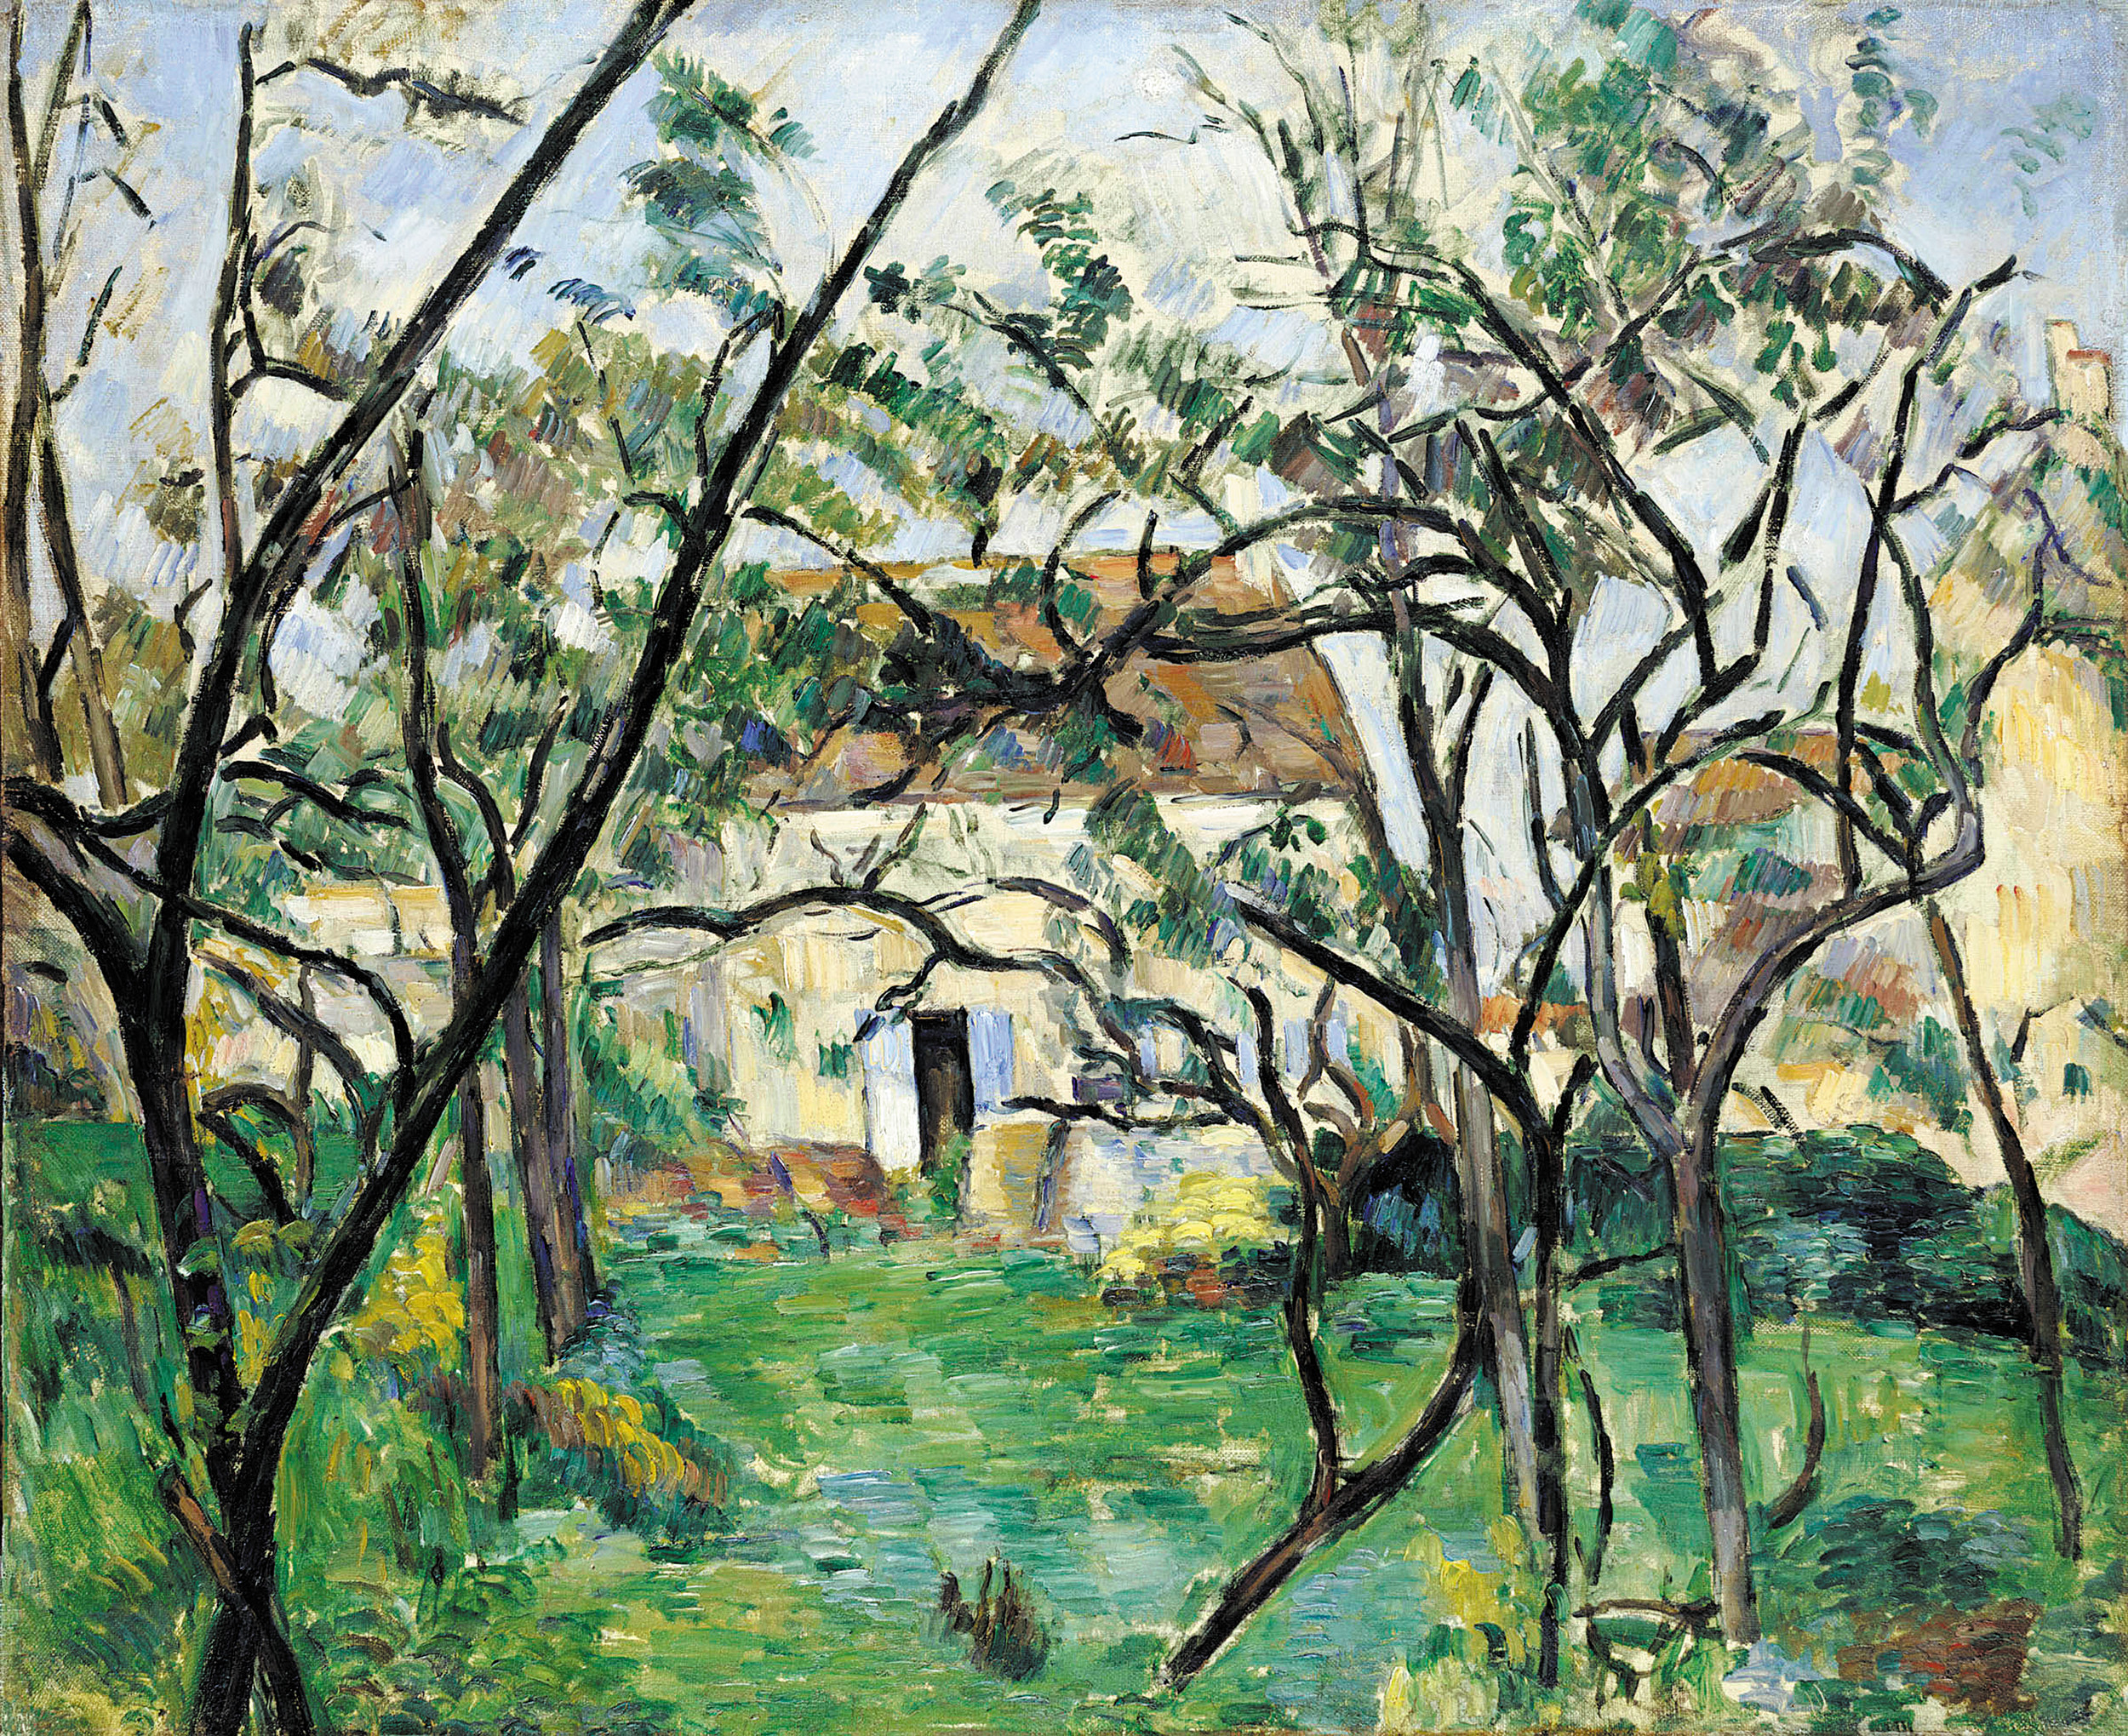 """House in the Country"" Paul Cezanne, 1877-1879, oil on canvas. Loaned by the Wadsworth Atheneum. Courtesy photo"